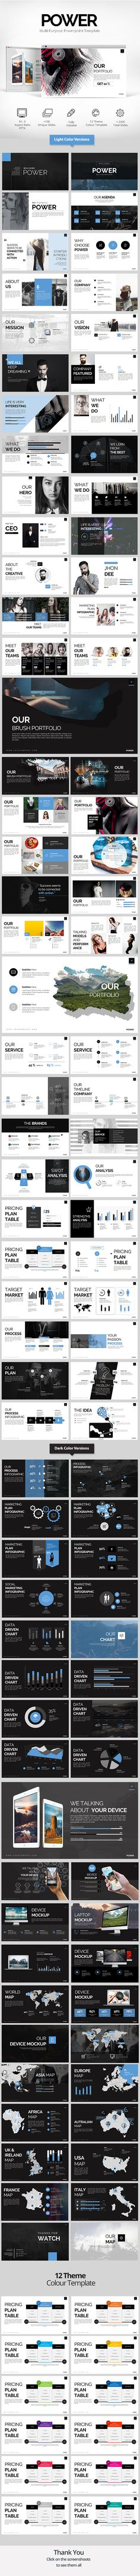 Power Powerpoint Presentation Template. Download here: http://graphicriver.net/item/power-powerpoint-presentation/16827903?ref=ksioks